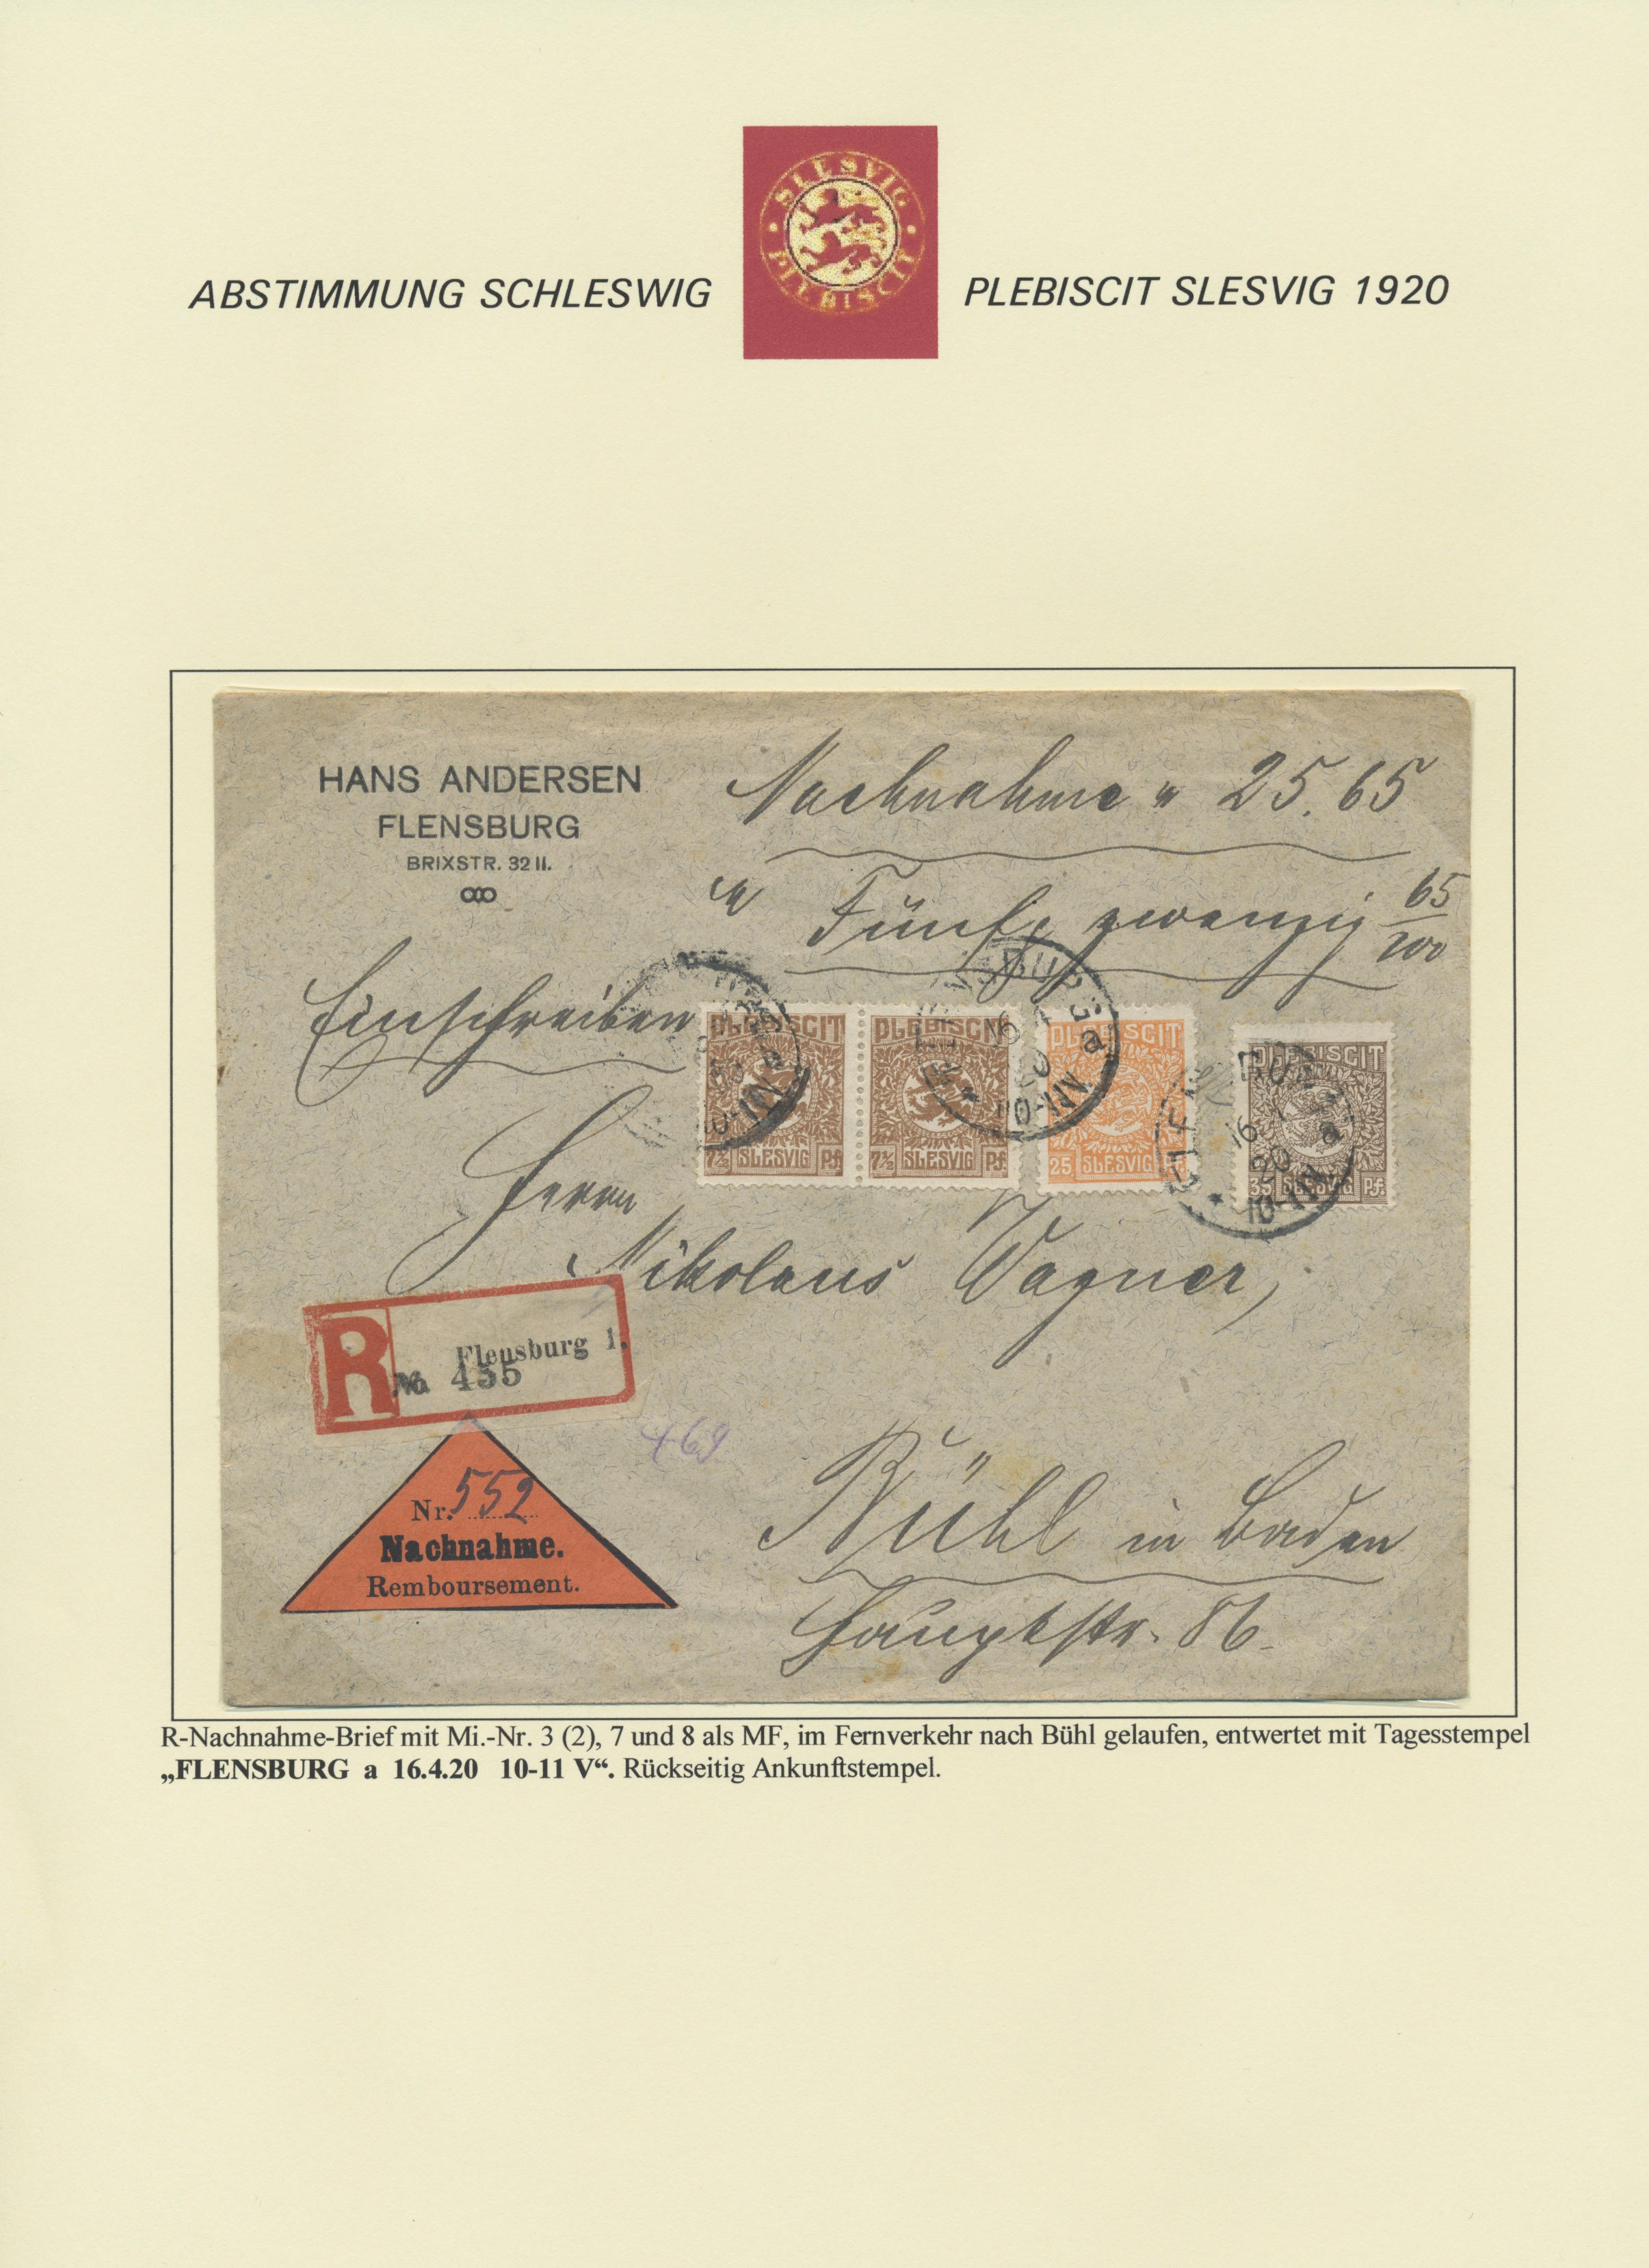 Lot 28887 - Deutsche Abstimmungsgebiete: Schleswig  -  Auktionshaus Christoph Gärtner GmbH & Co. KG Sale #46 Gollcetions Germany - including the suplement